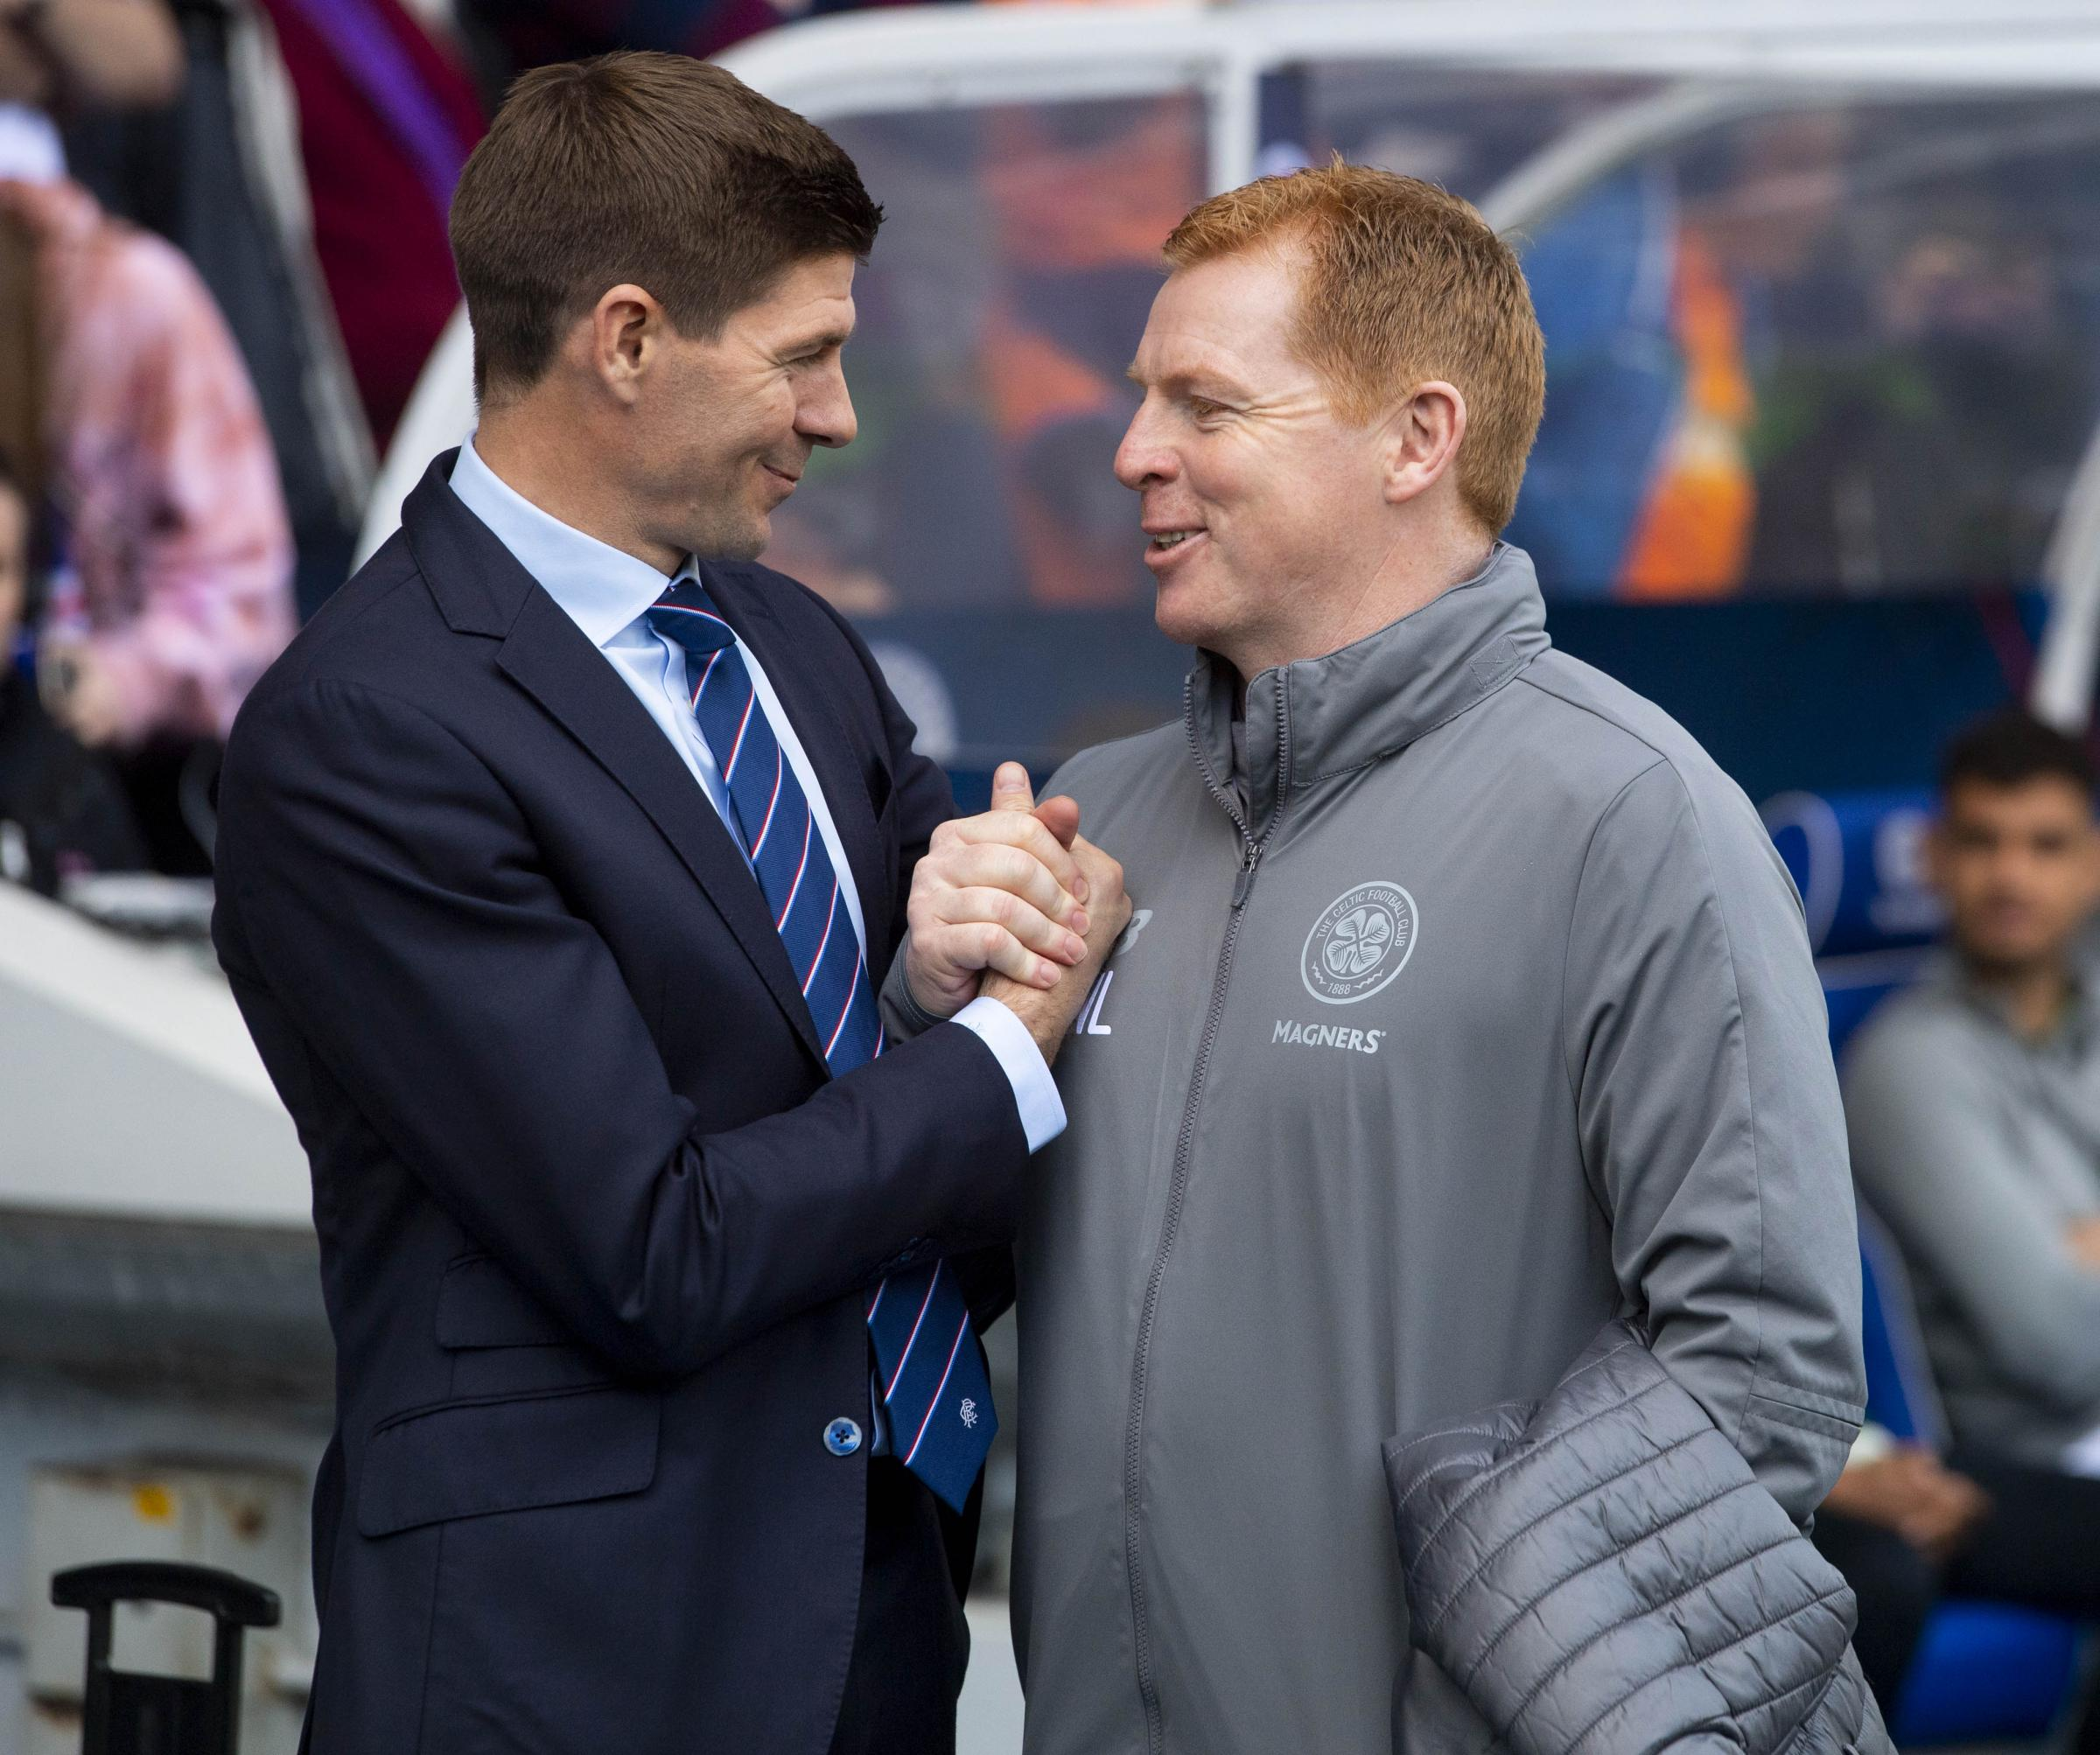 Old Firm clash between Rangers and Celtic could be 'like a basketball game'